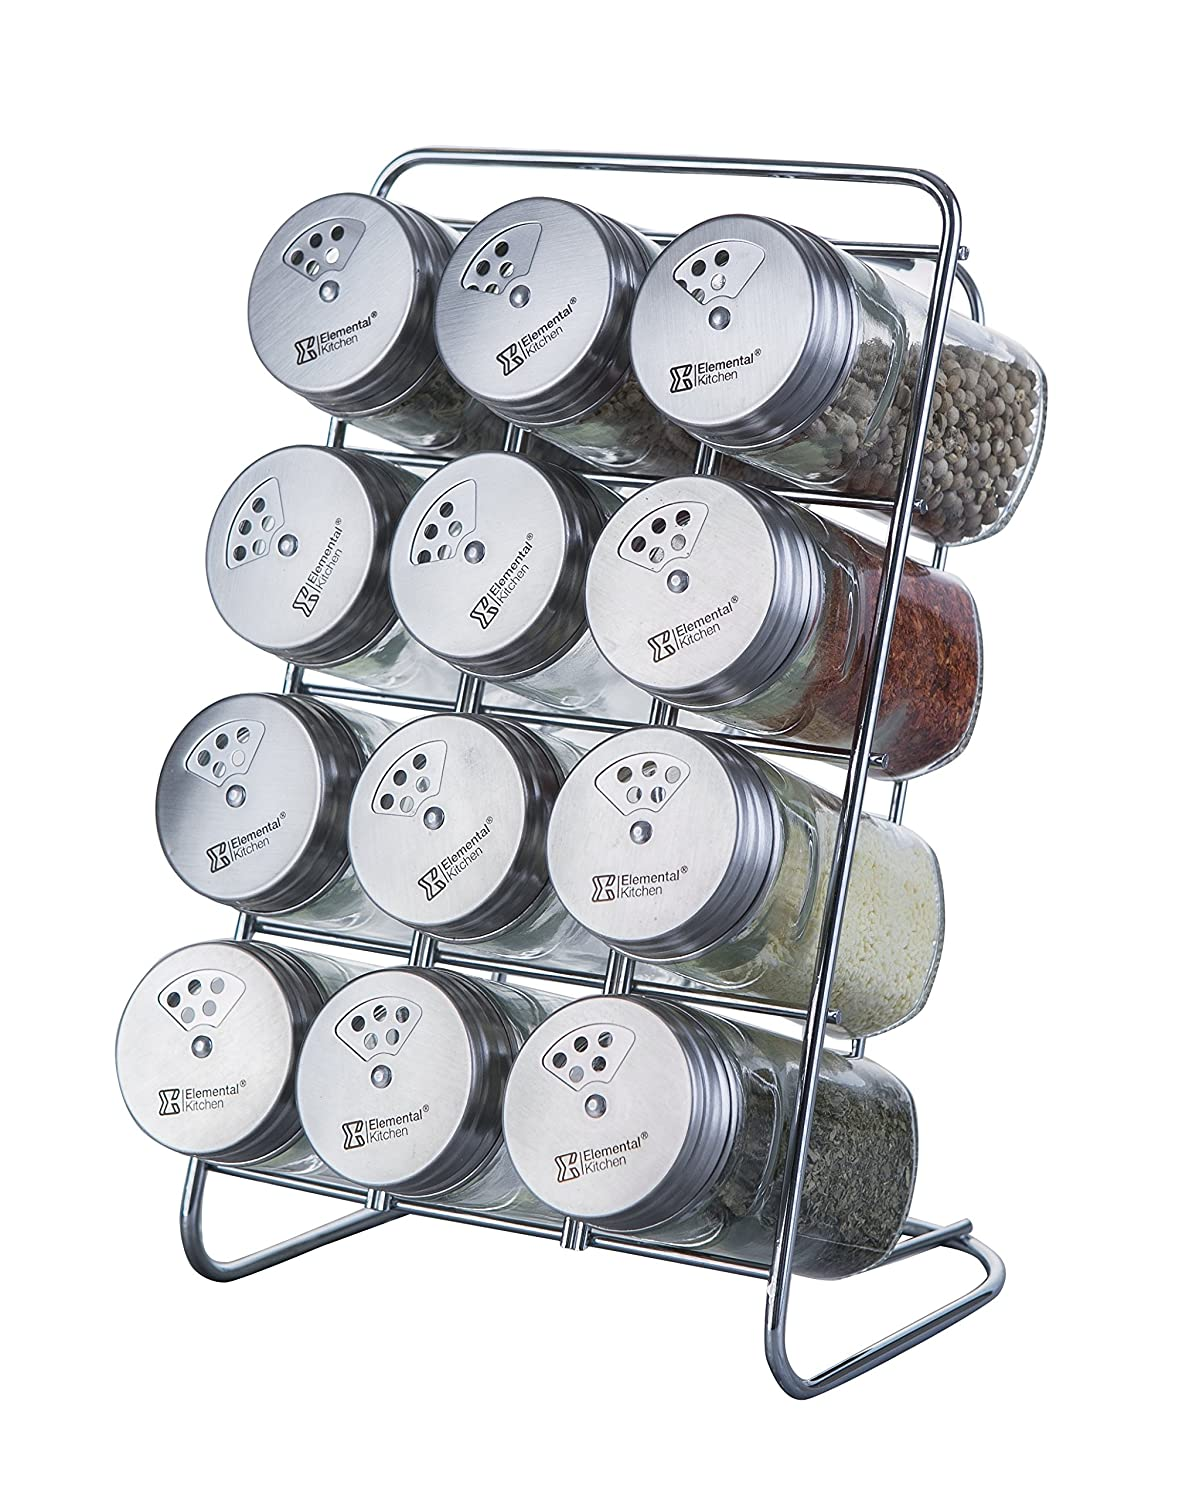 Elemental Kitchen Liberty Stainless Steel Top Spice Jars, 3 Openings, 12-Jar Rack Set ElementalKitchen